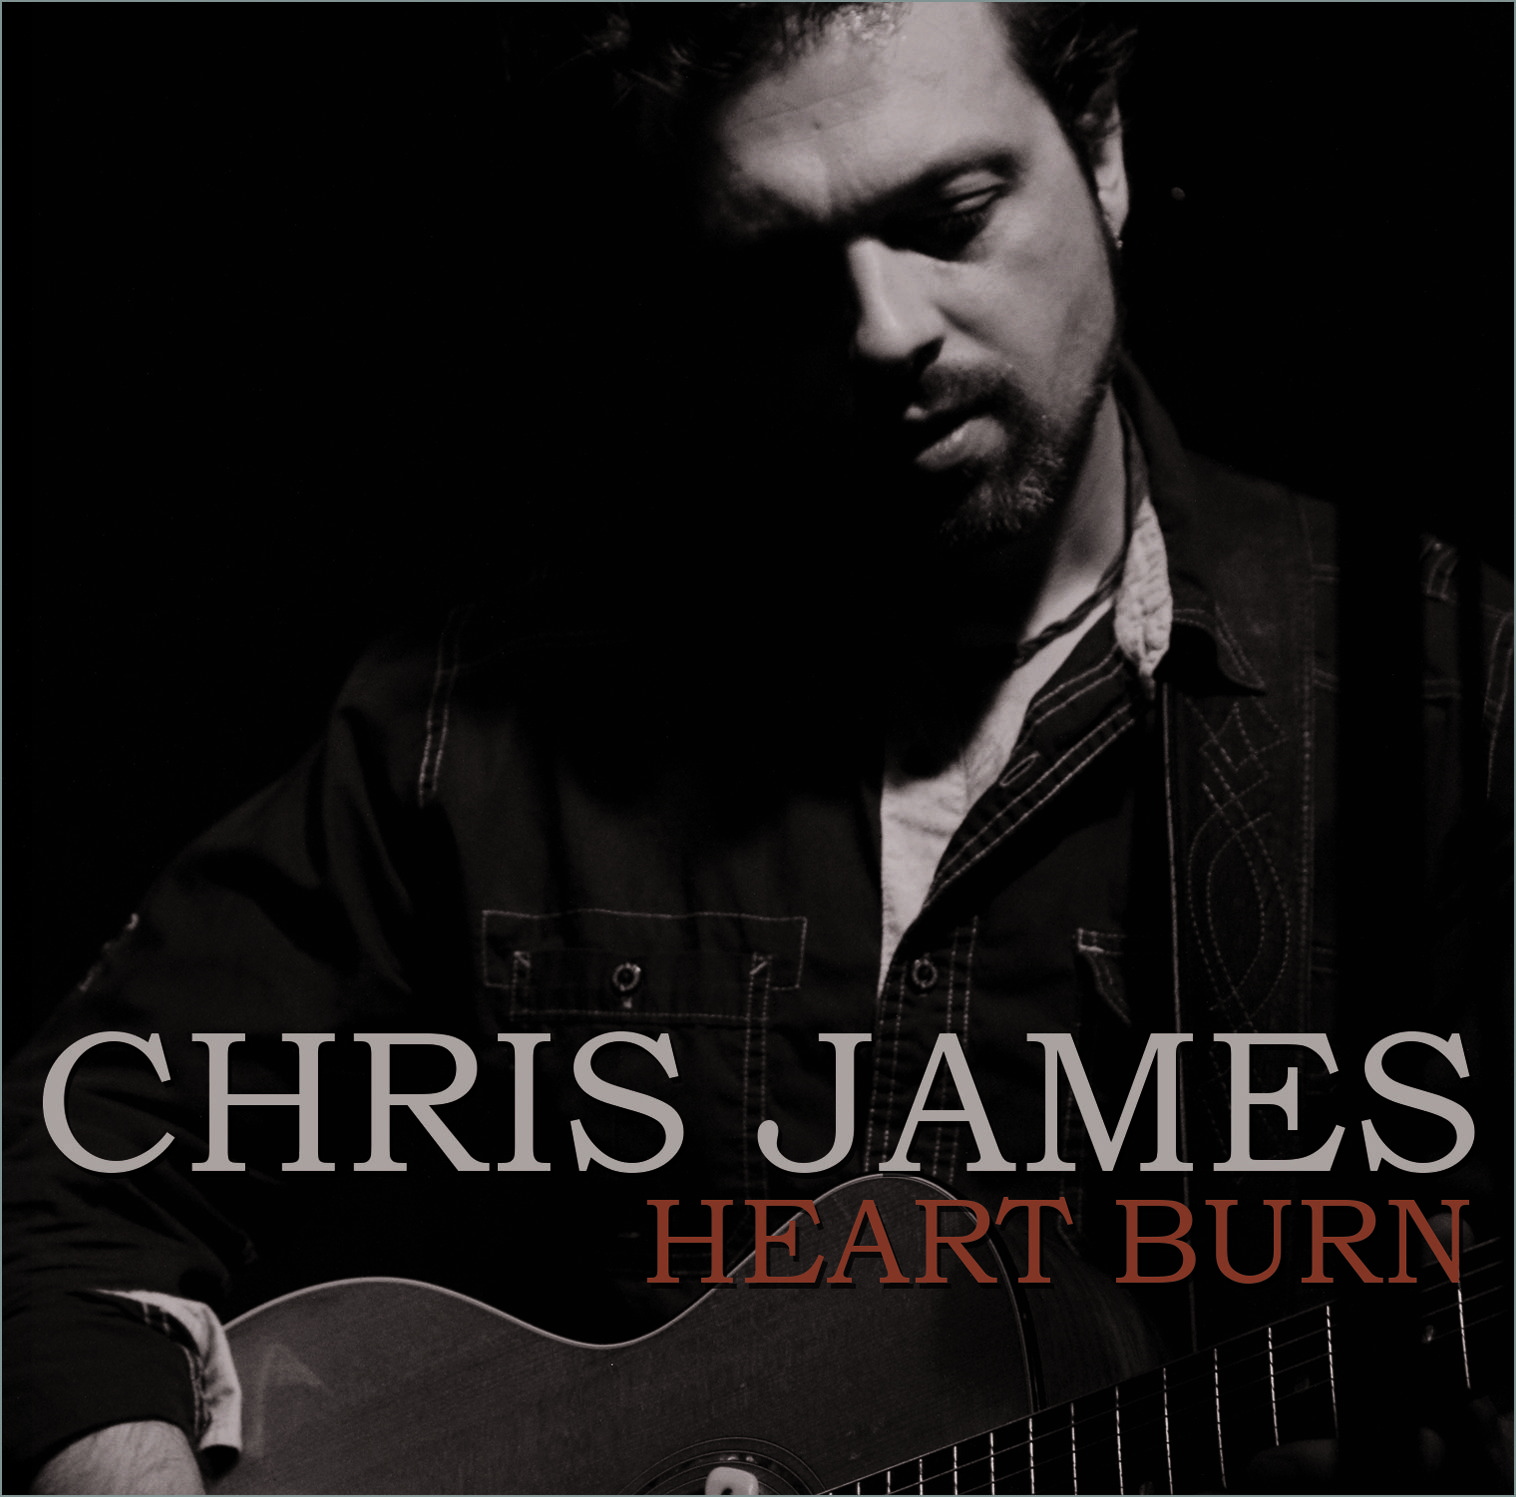 Chris James 'Heartburn'